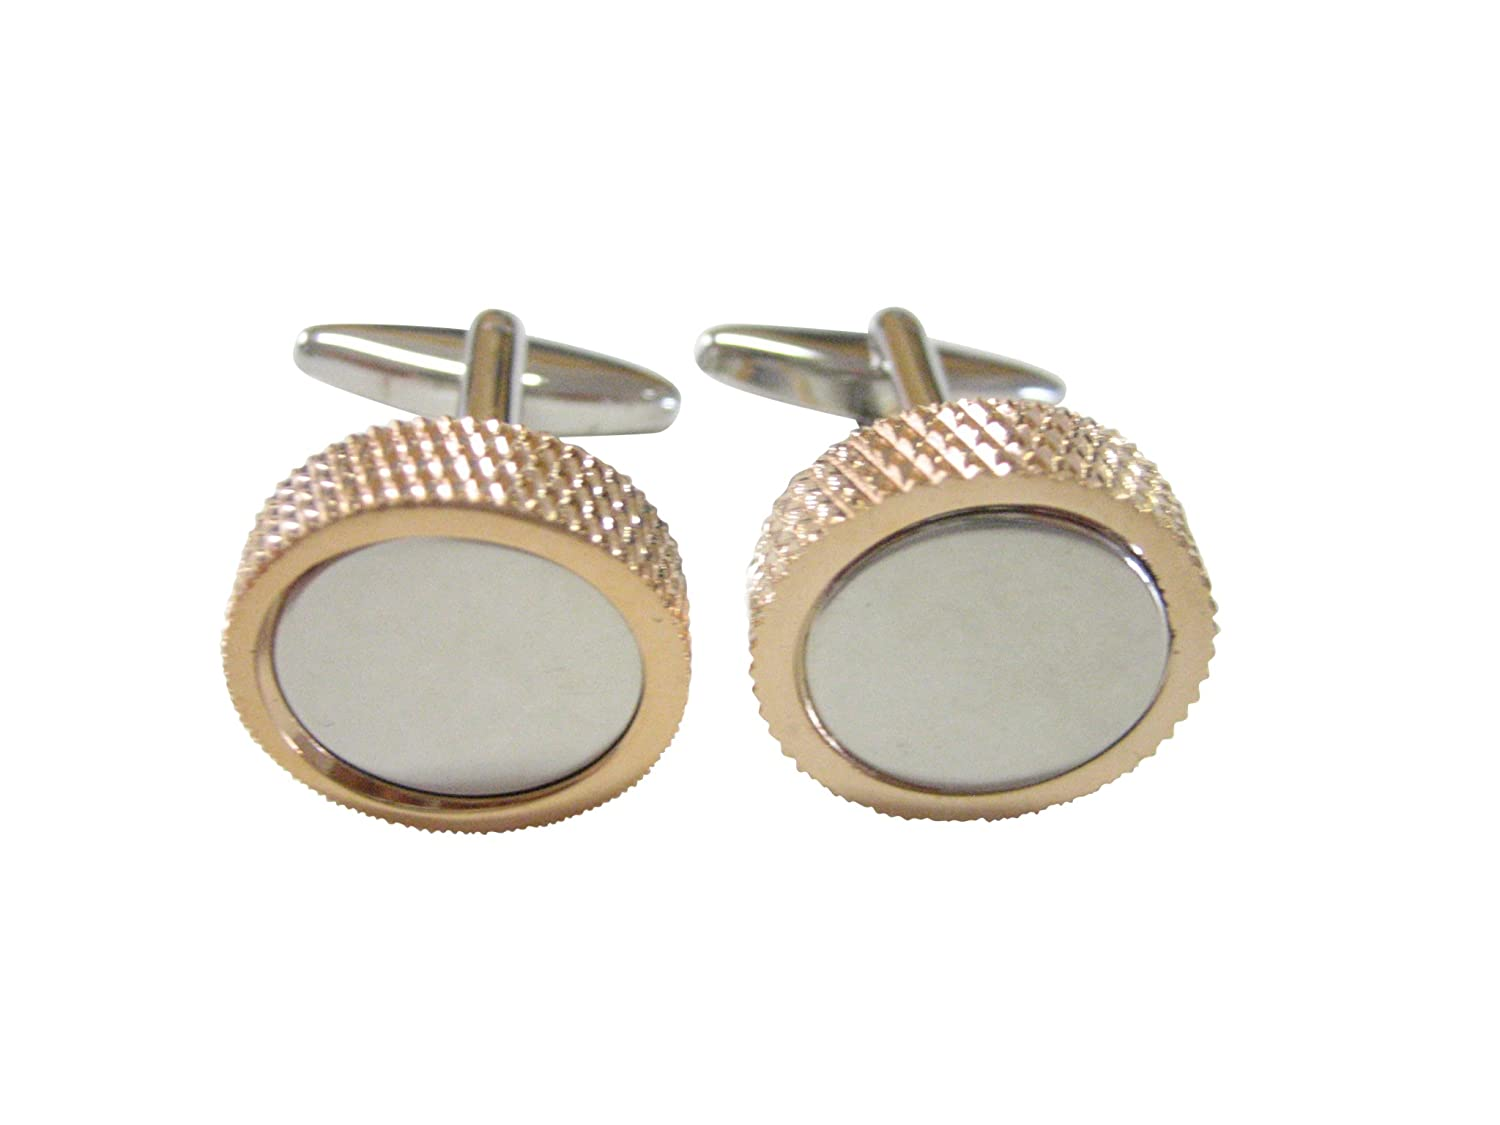 Dual Toned Textured Circle Cufflinks